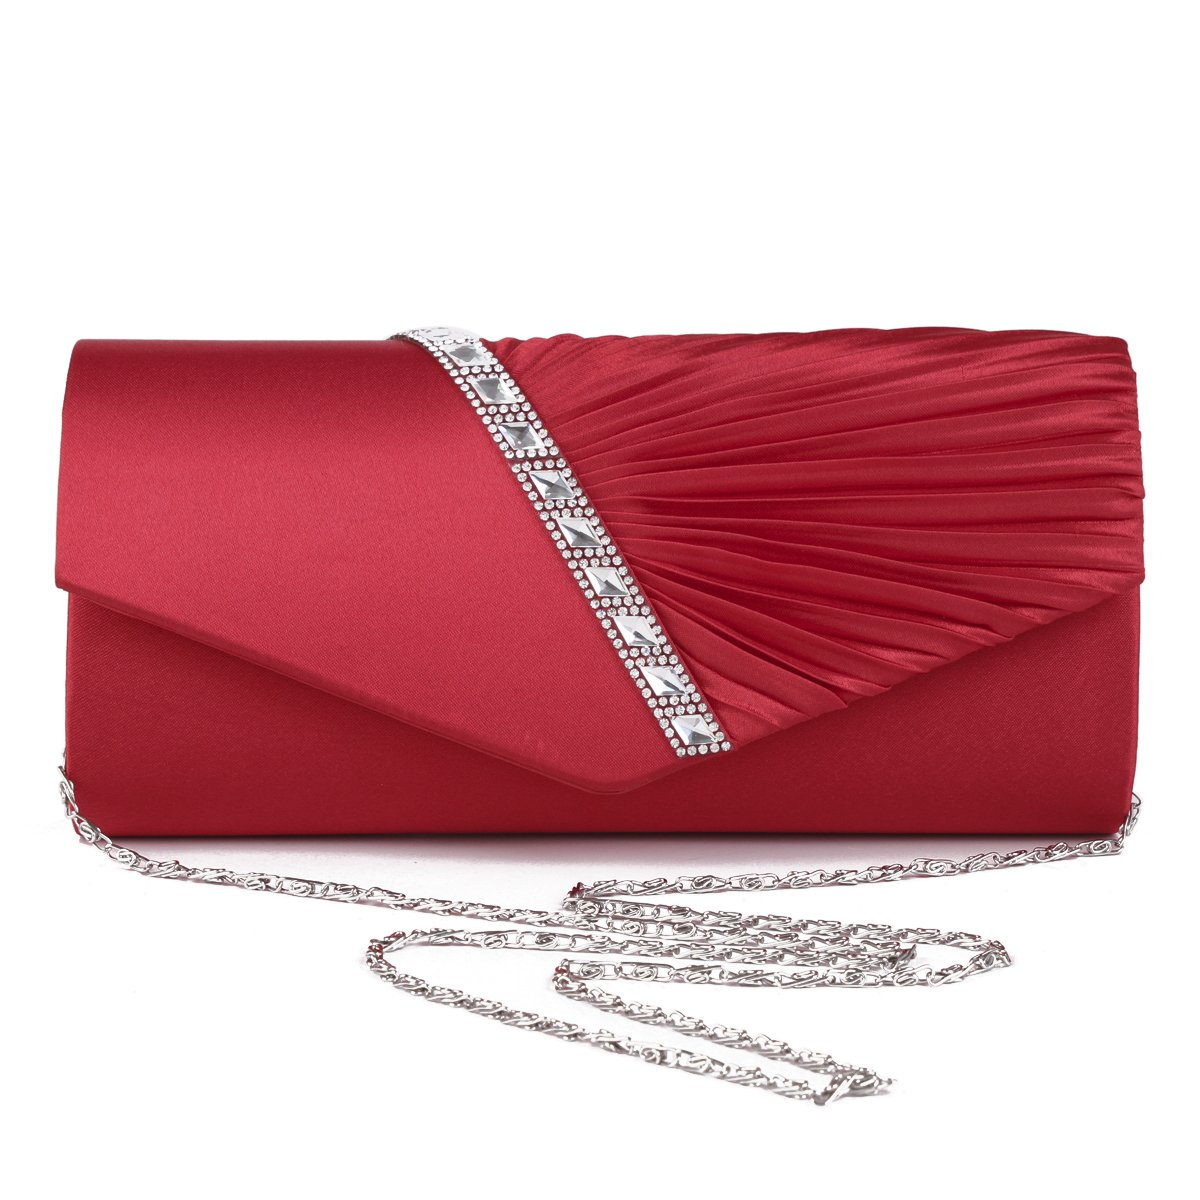 24cd4691a2f6 Damara Womens Pleated Crystal-Studded Satin Handbag Evening Clutch